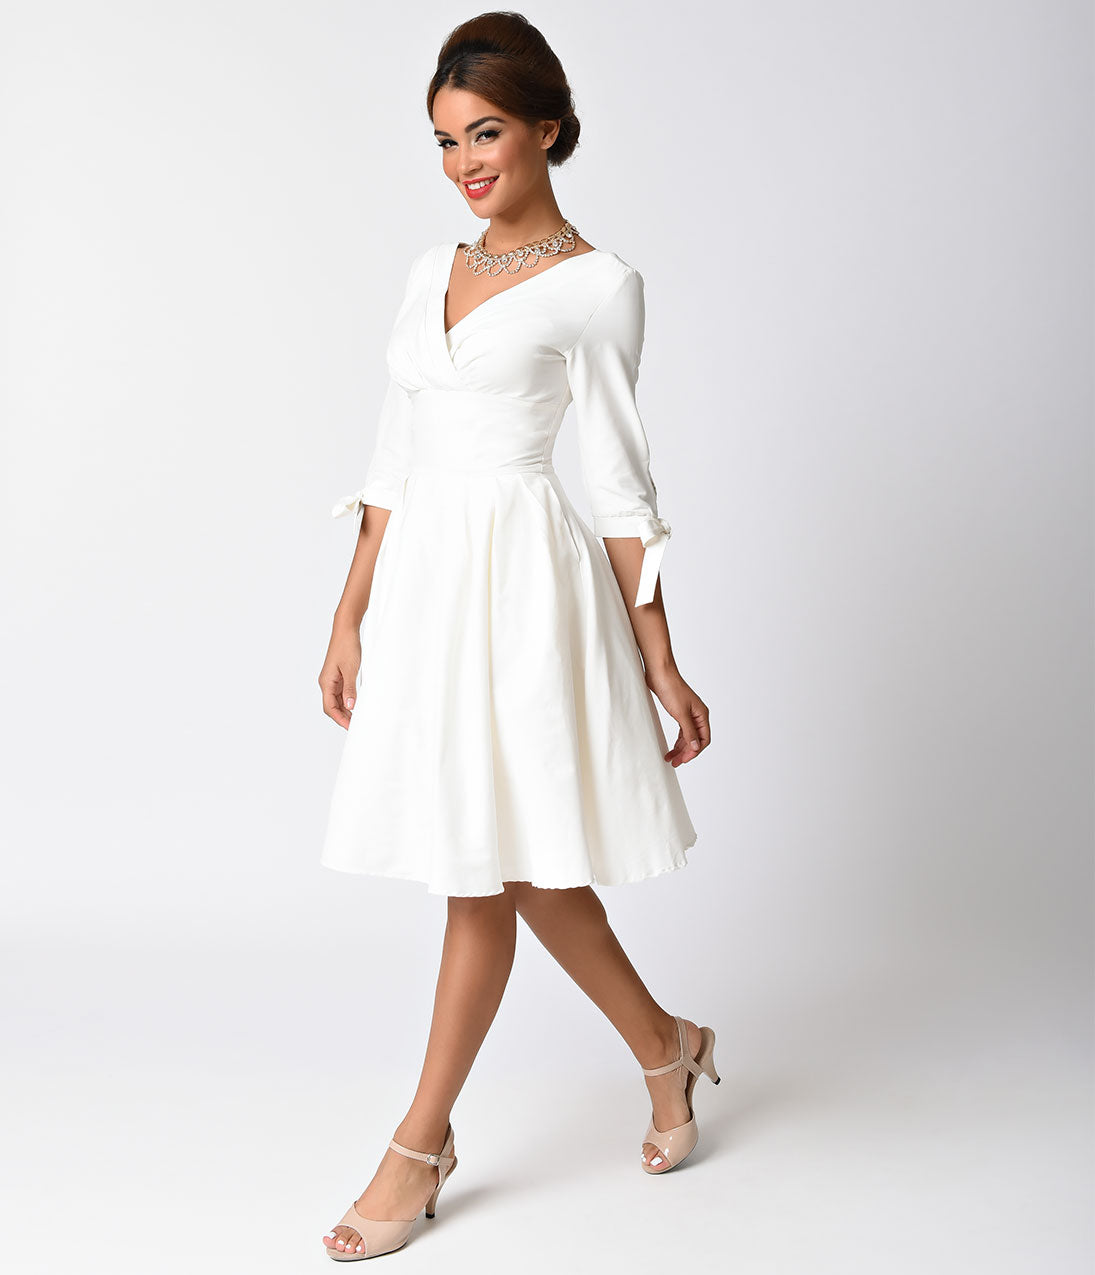 60s Wedding Dress | 1960s Style Wedding Dresses Unique Vintage 1950s Style White Three-Quarter Sleeve Diana Swing Dress $74.00 AT vintagedancer.com